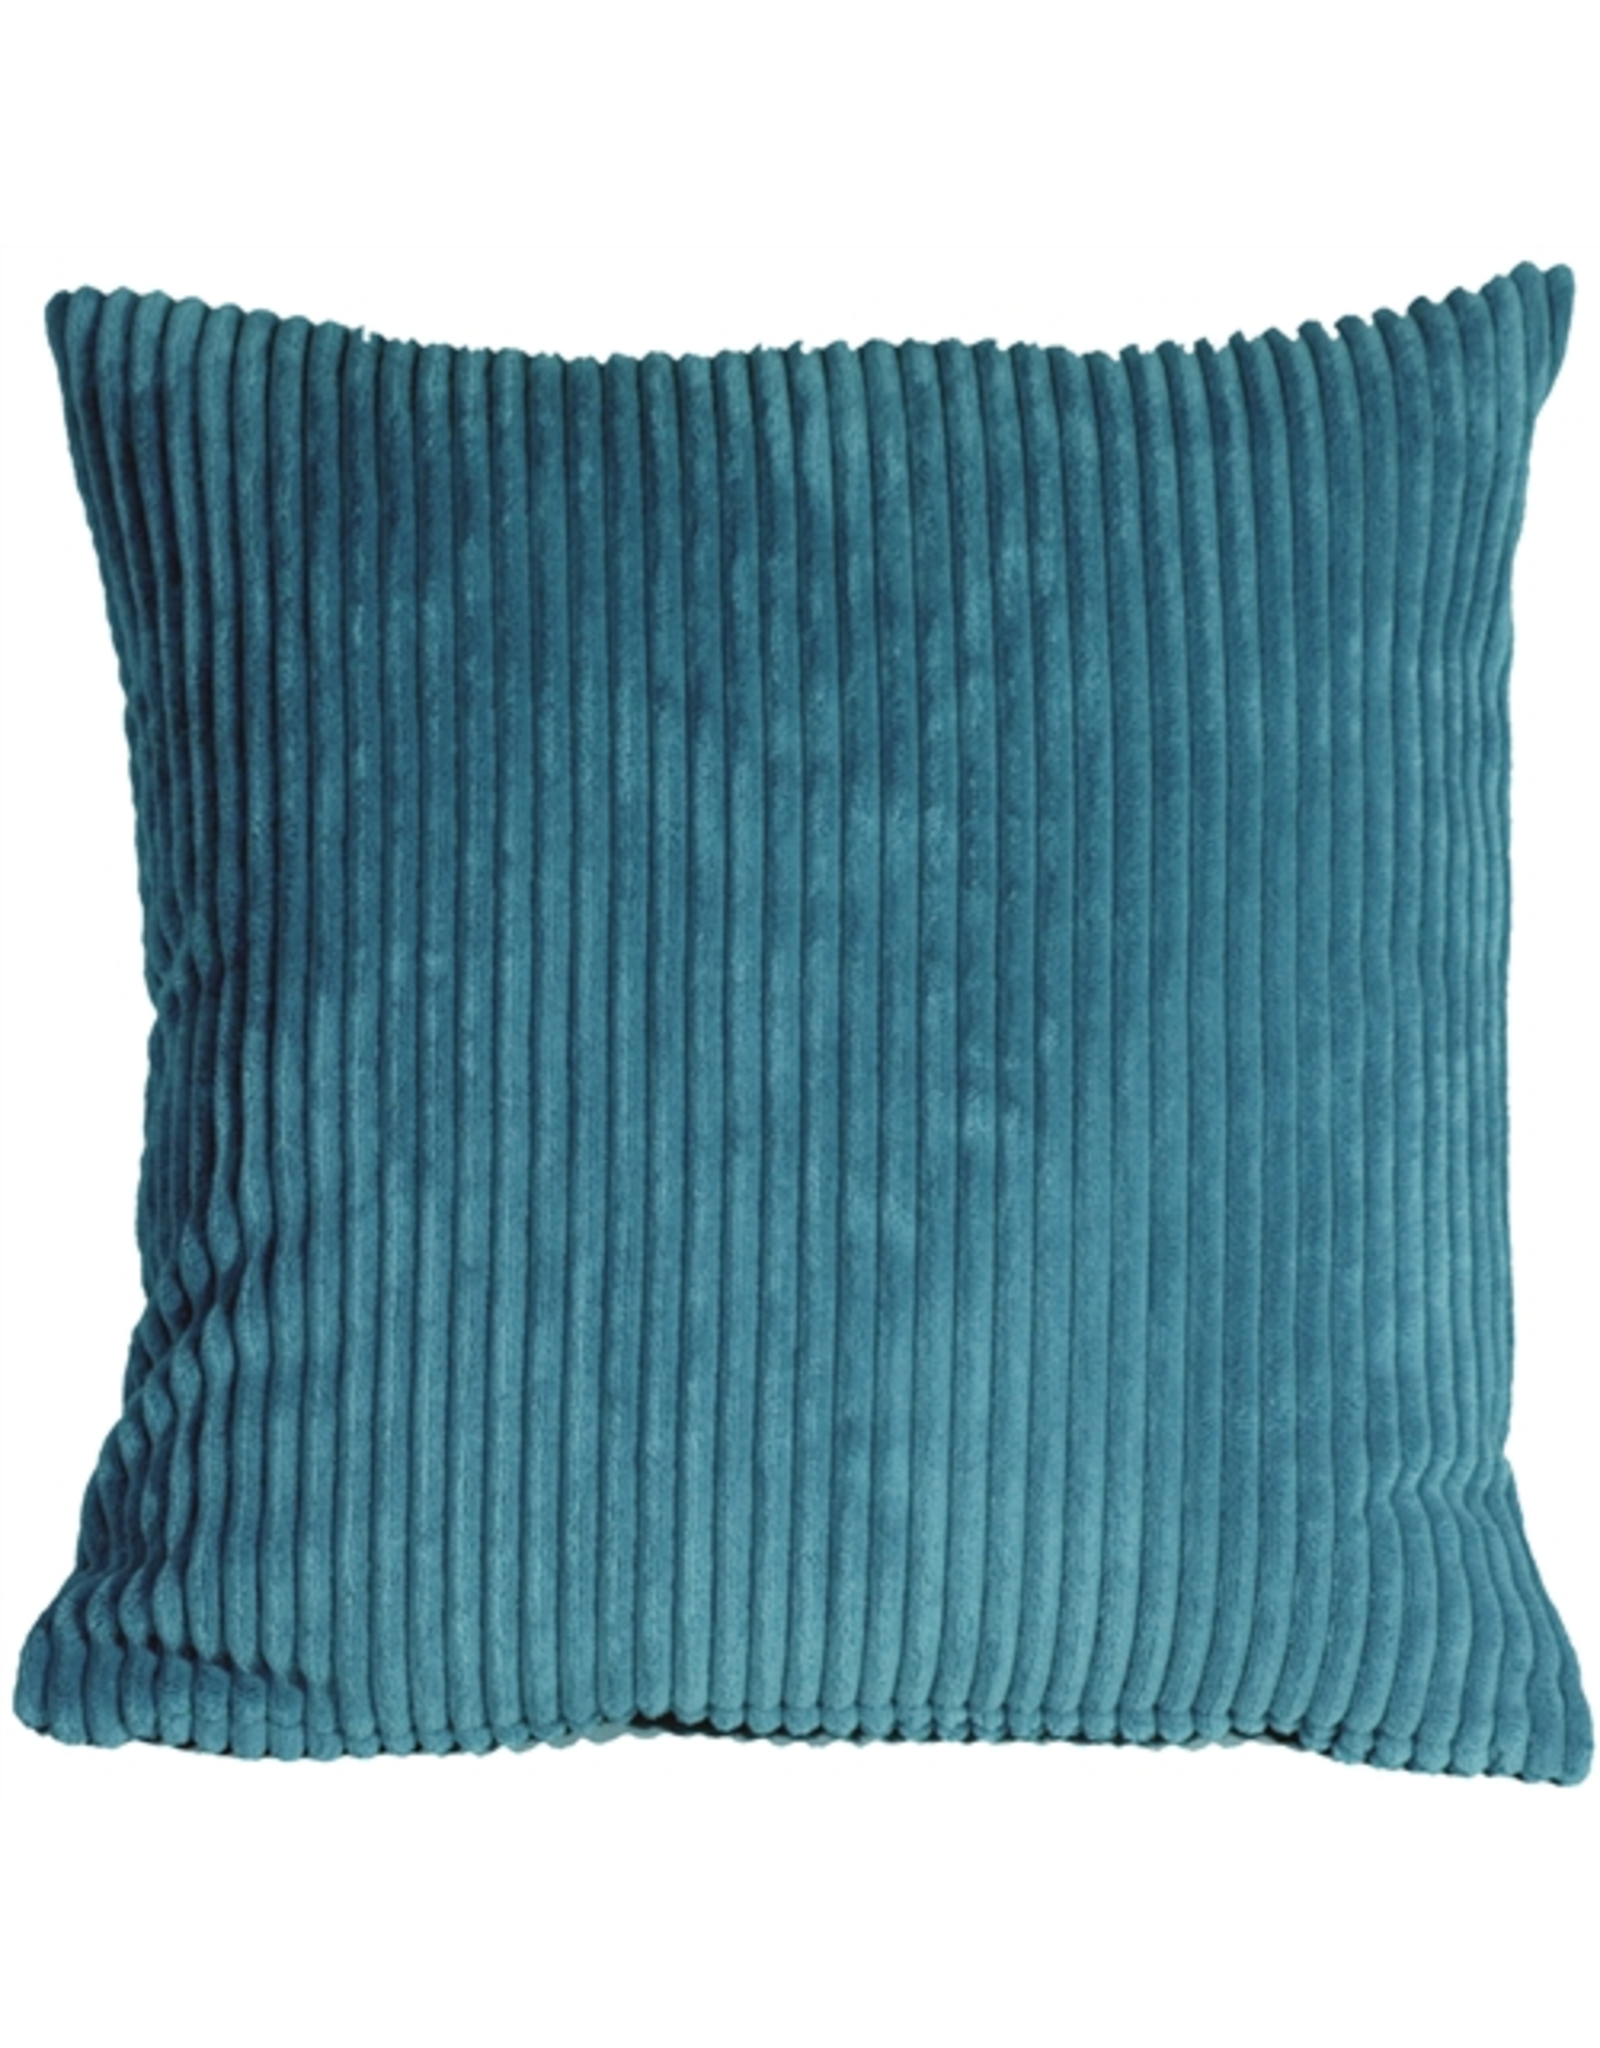 Pillow Decor Corduroy Marine Blue 18X18 Cushion with Feather Filler